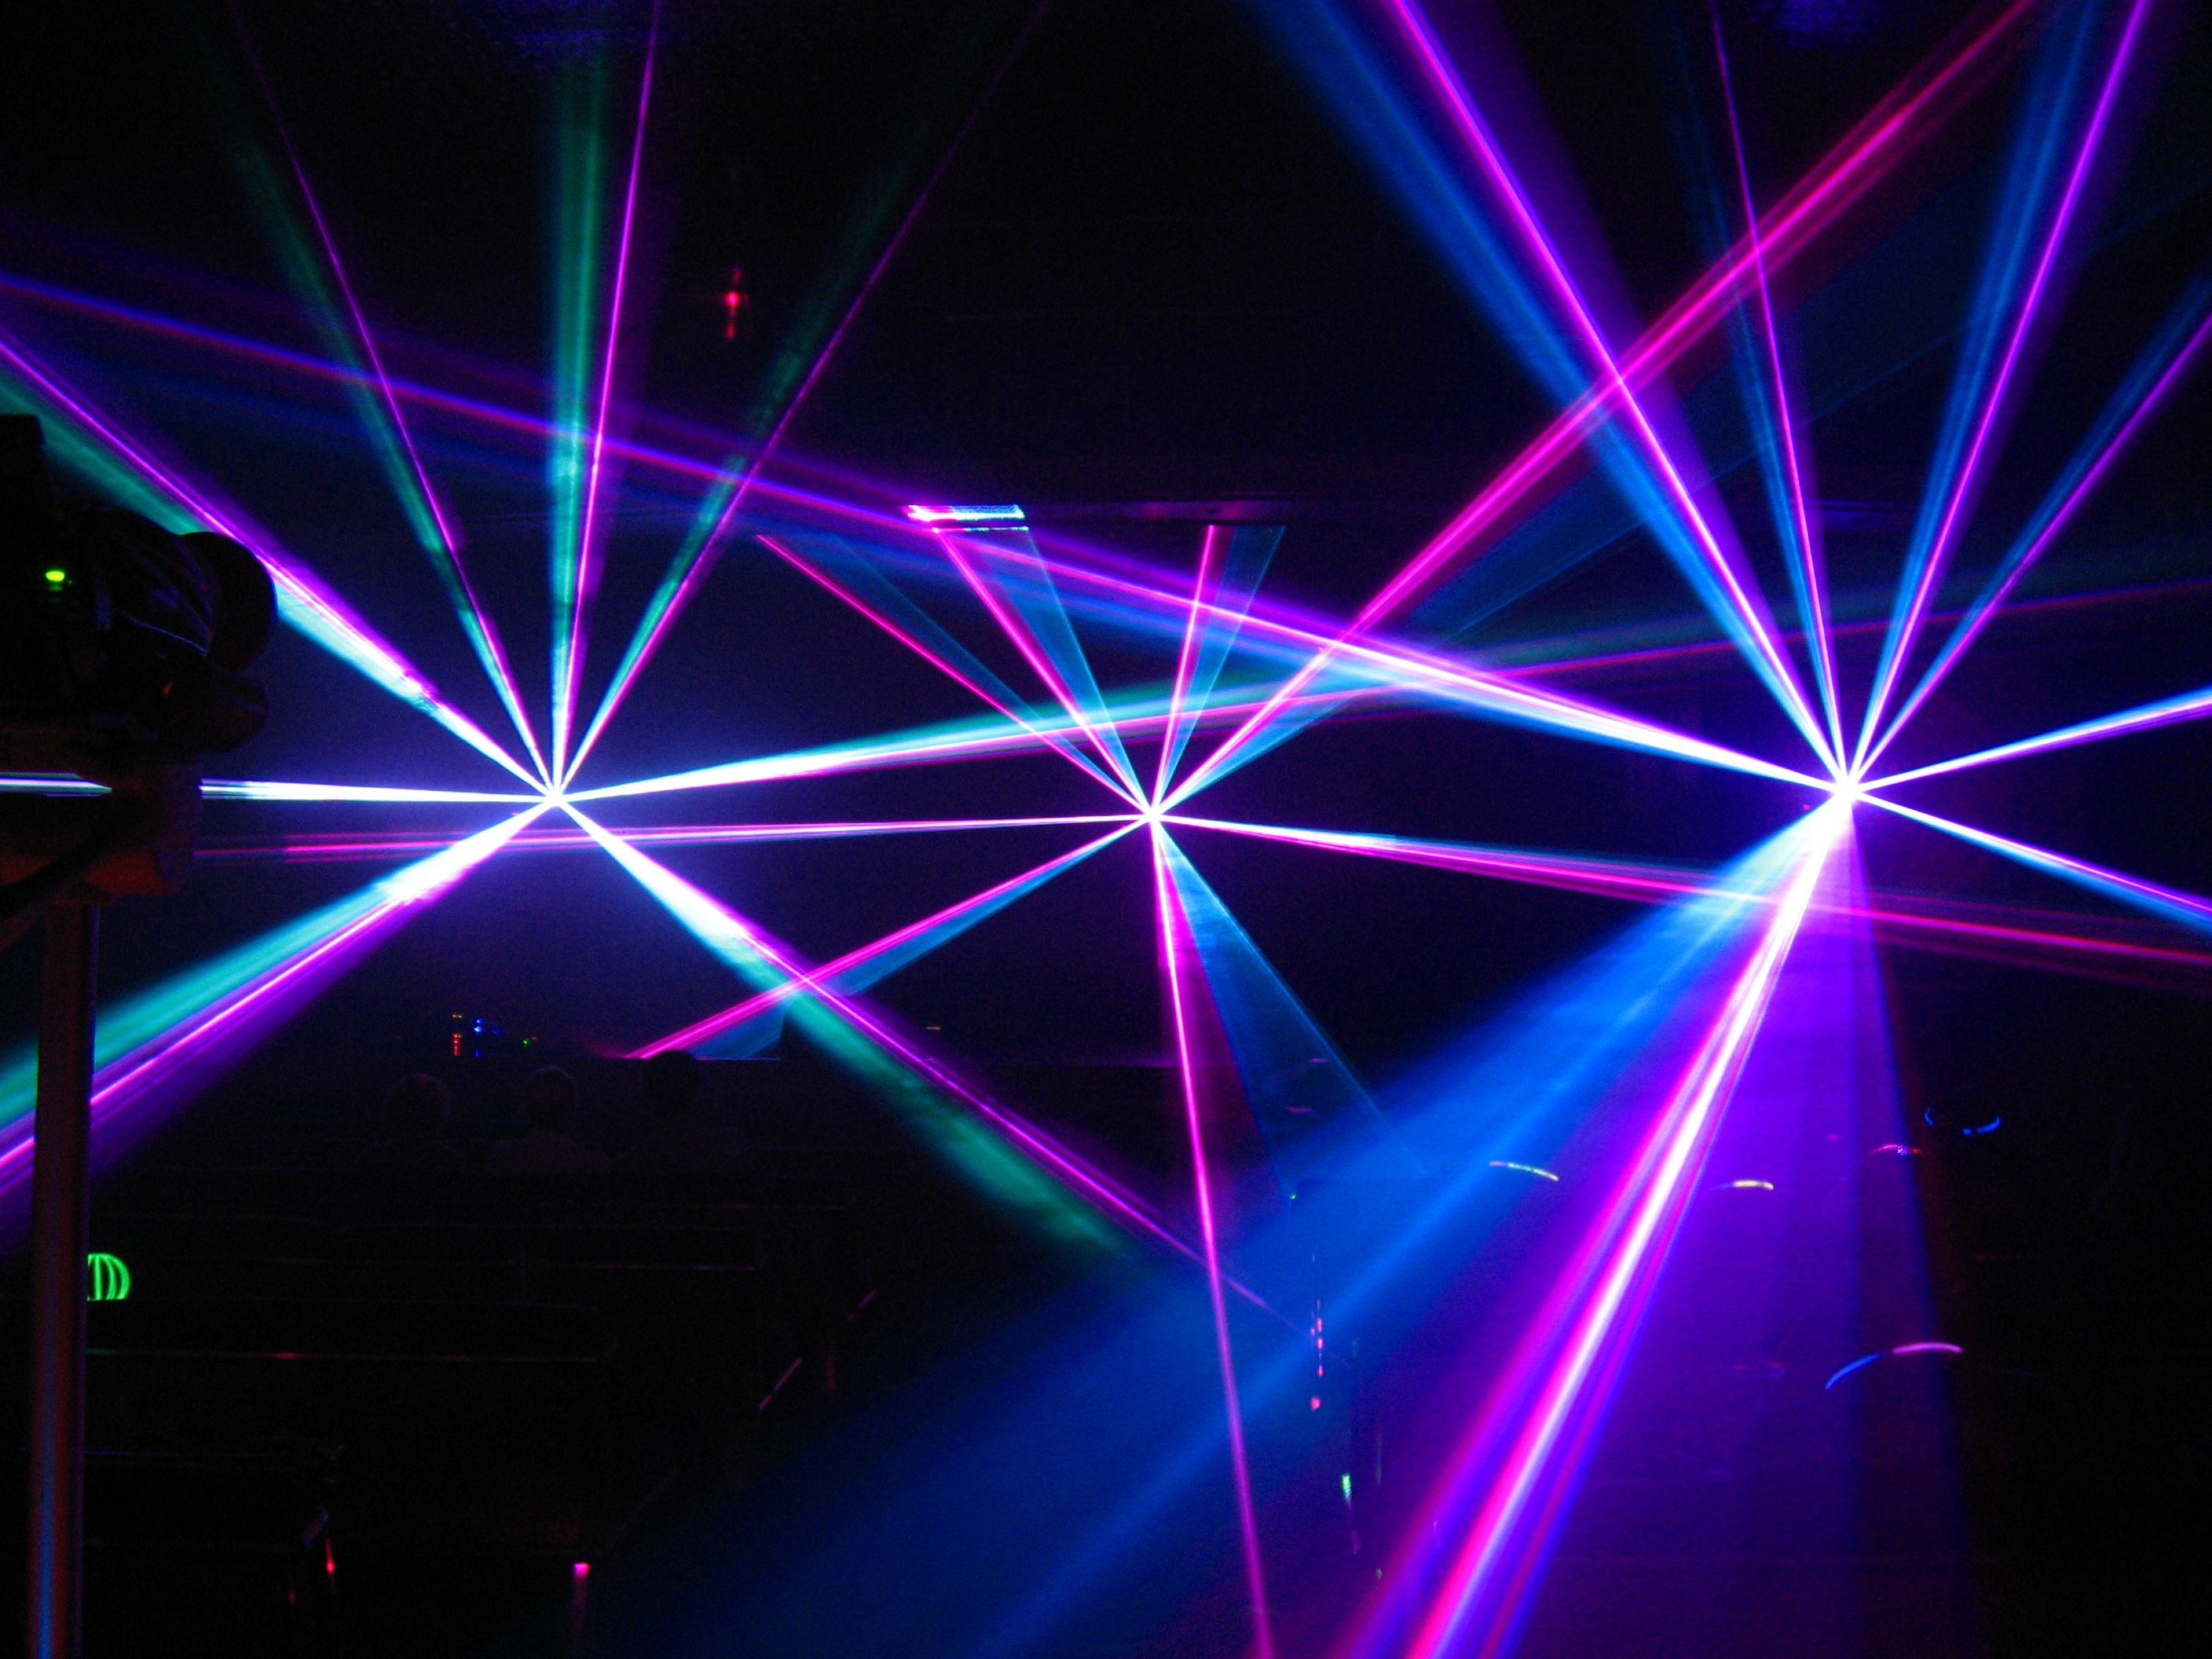 laser show party wallpaper - photo #25